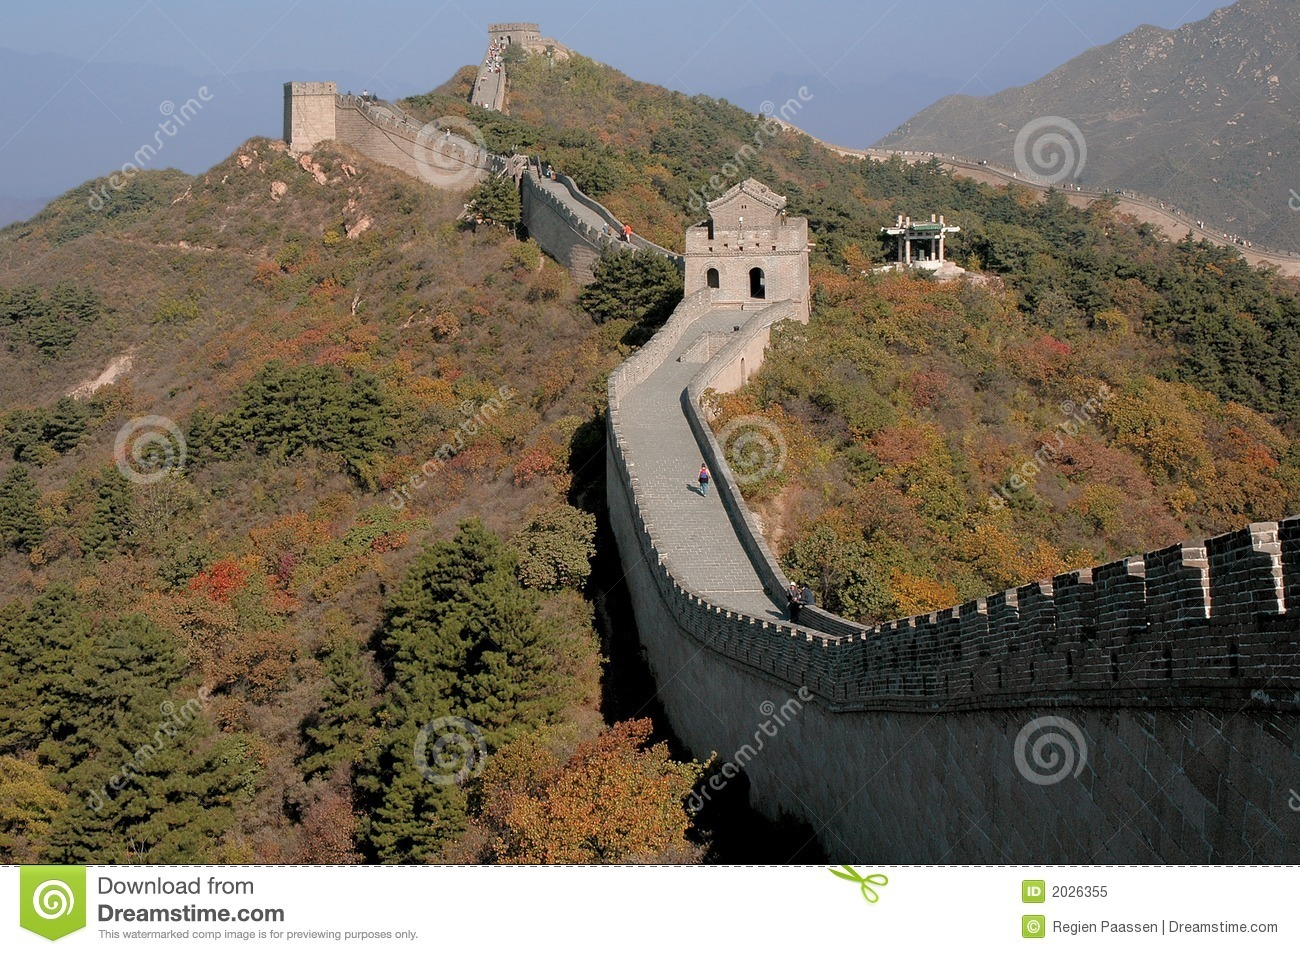 fe7aded30c9d6754cfab_chinese-wall-.jpg